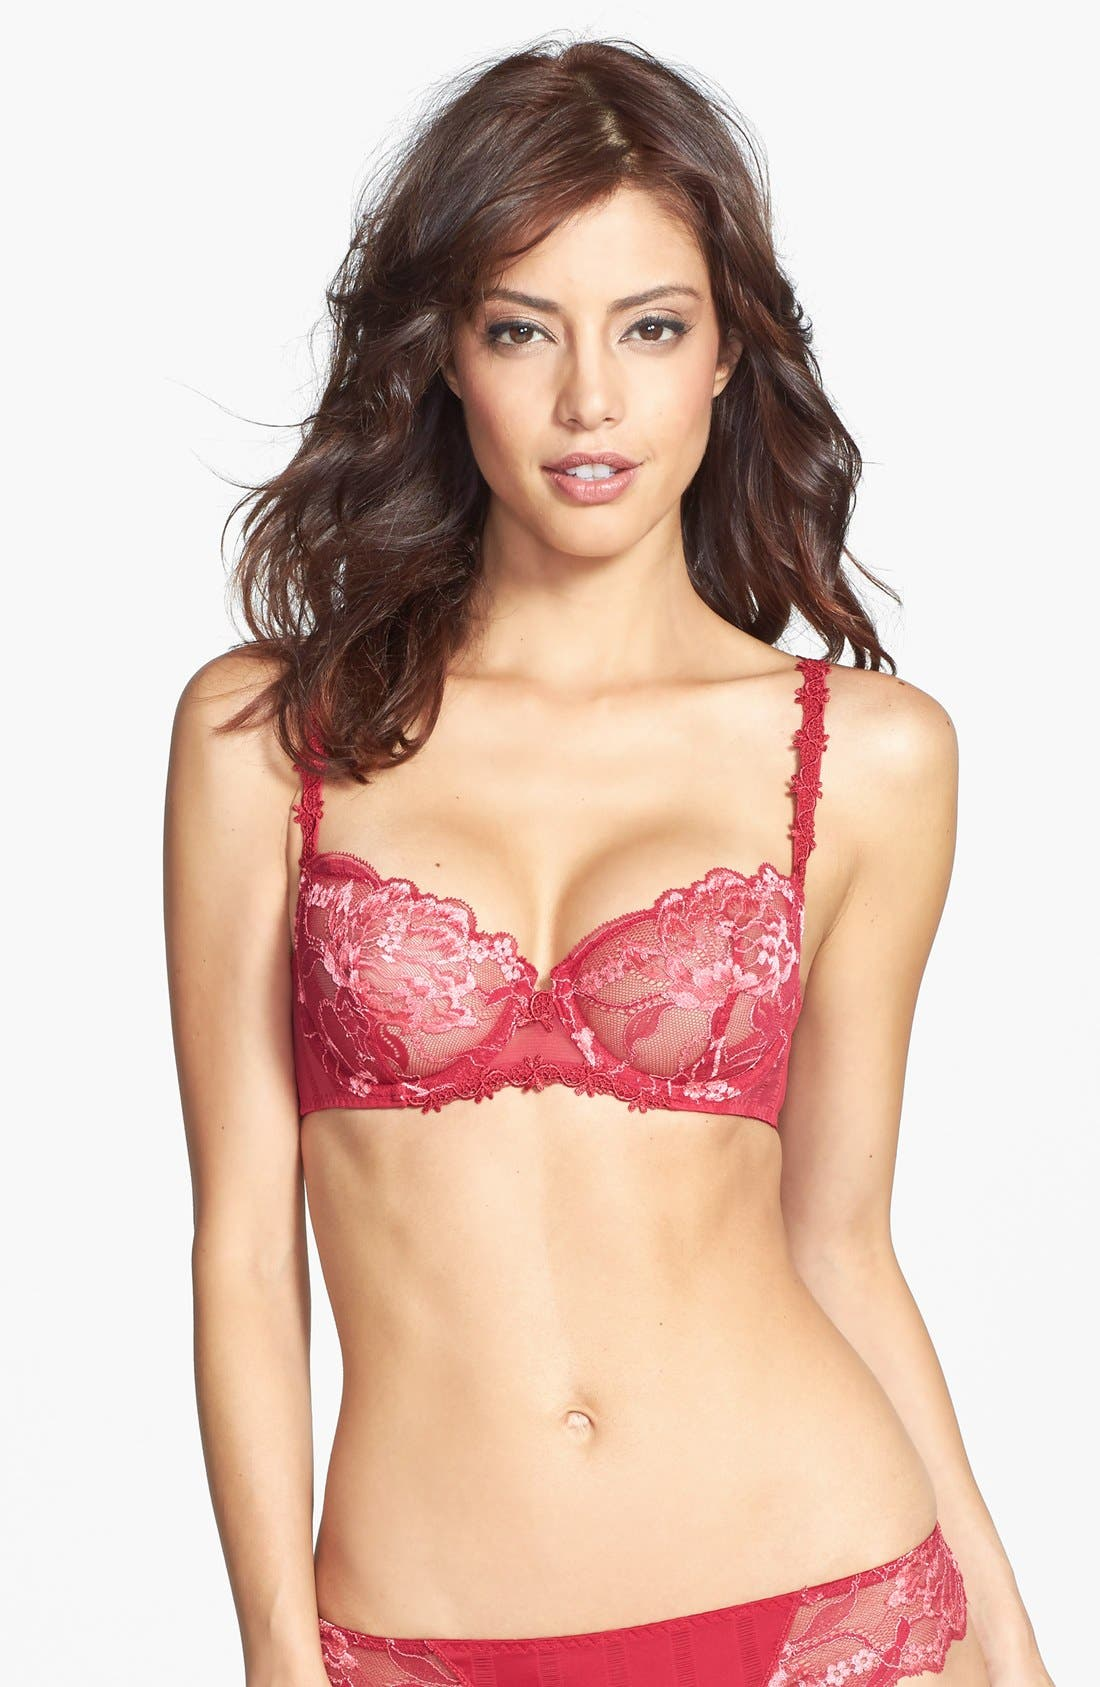 'Amour' Underwire Demi Bra,                             Main thumbnail 9, color,